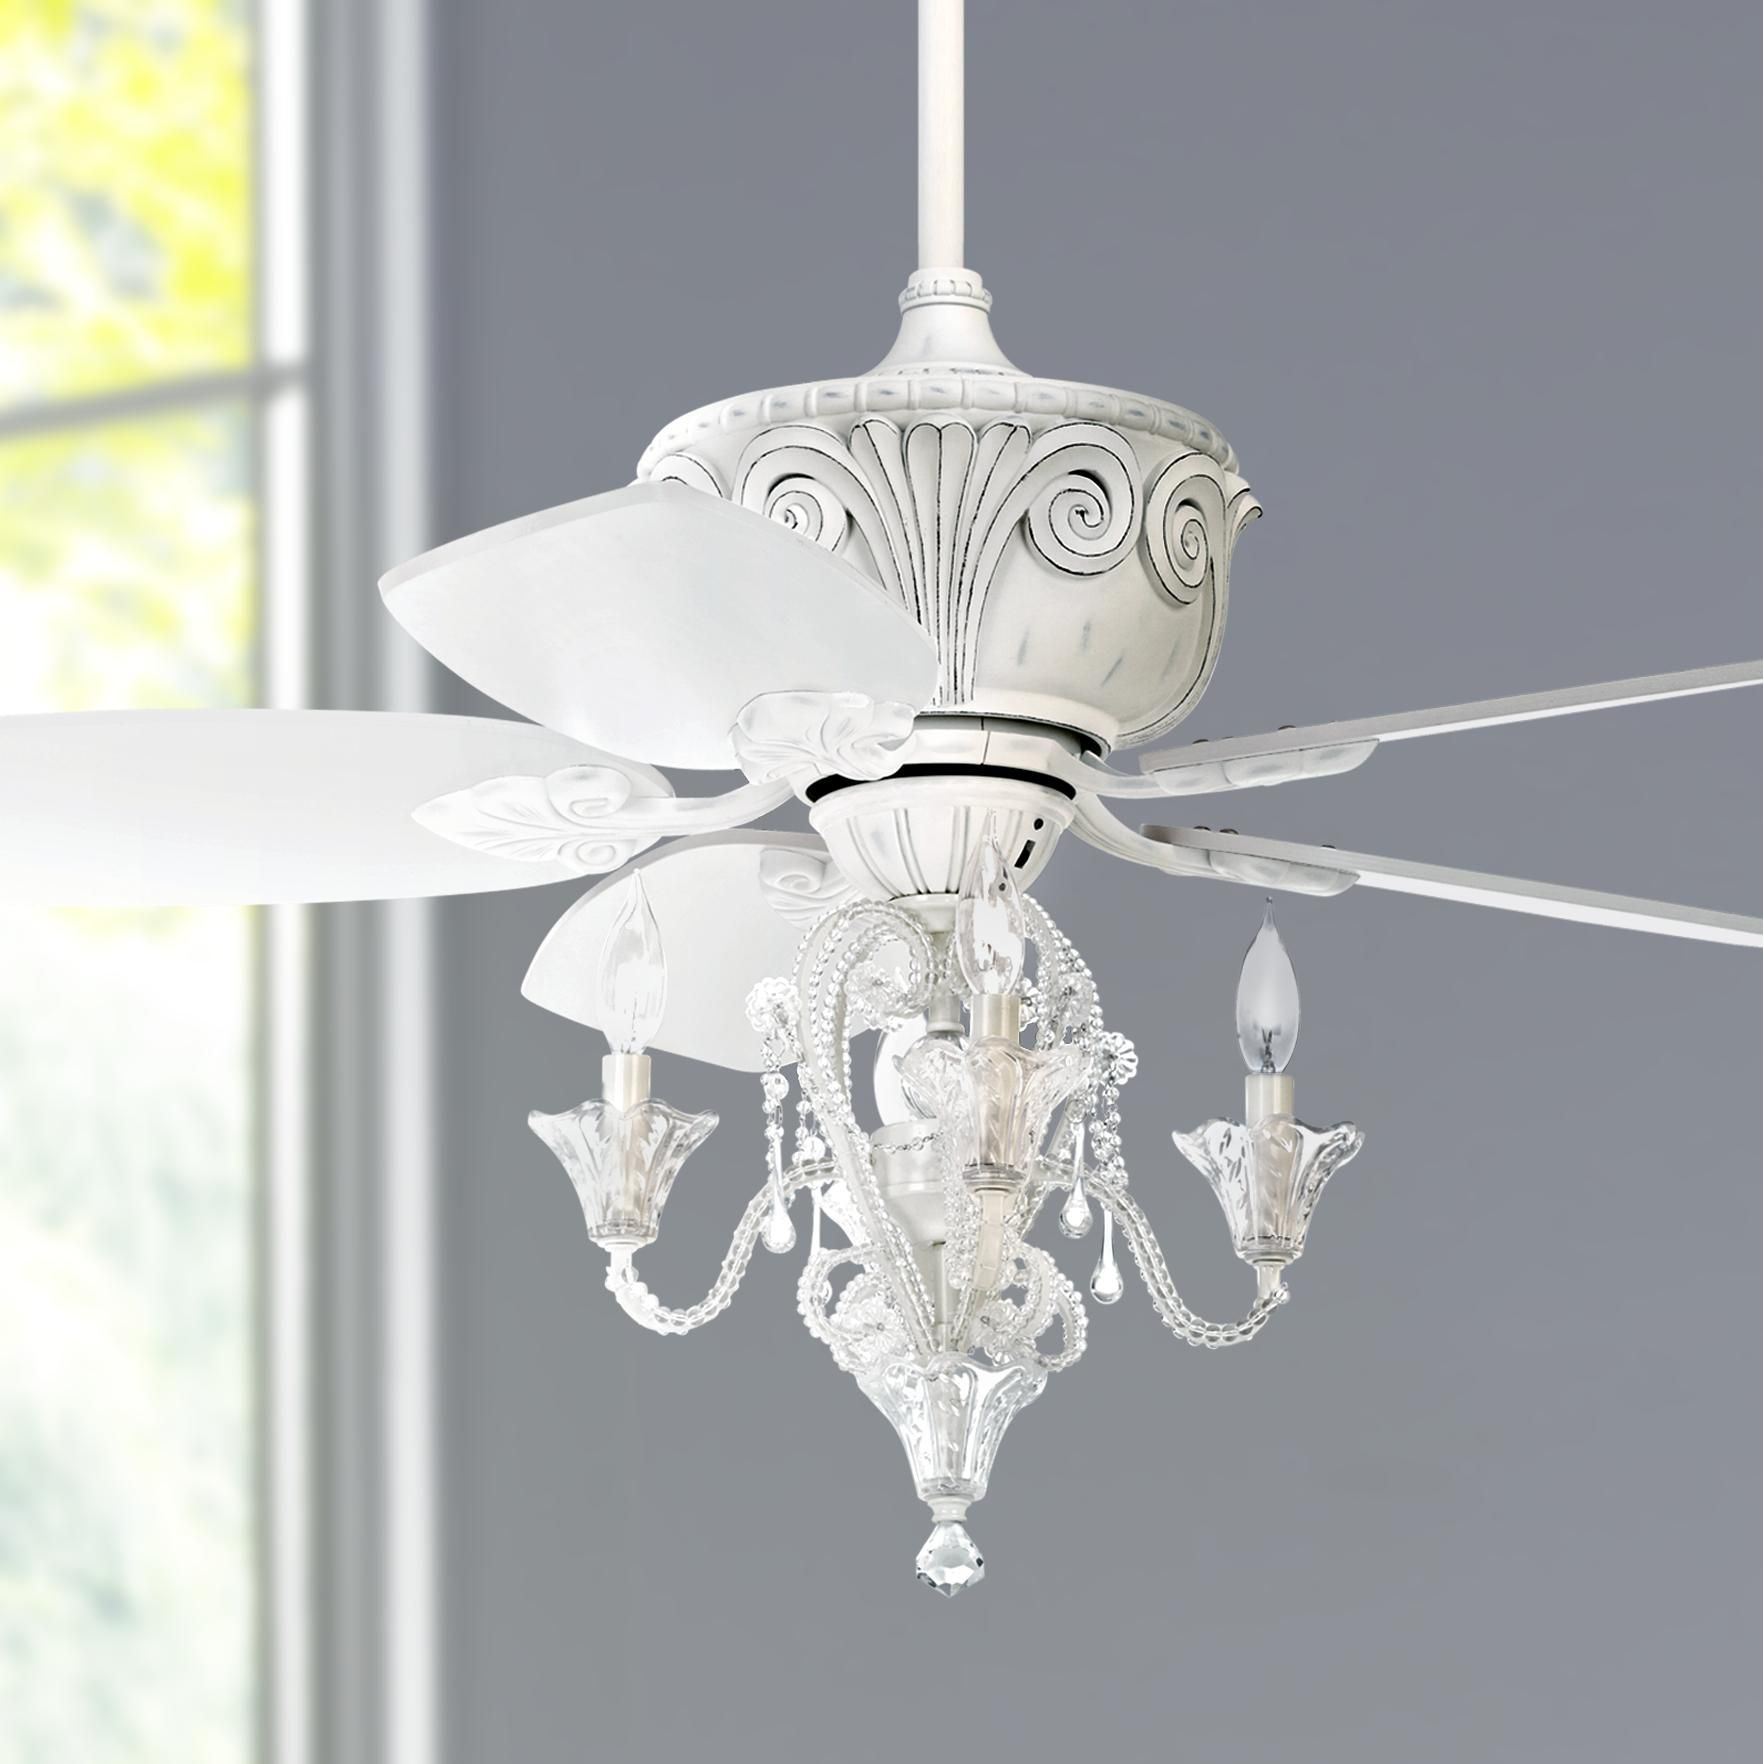 Casa Deville Antique White Ceiling Fan with Light